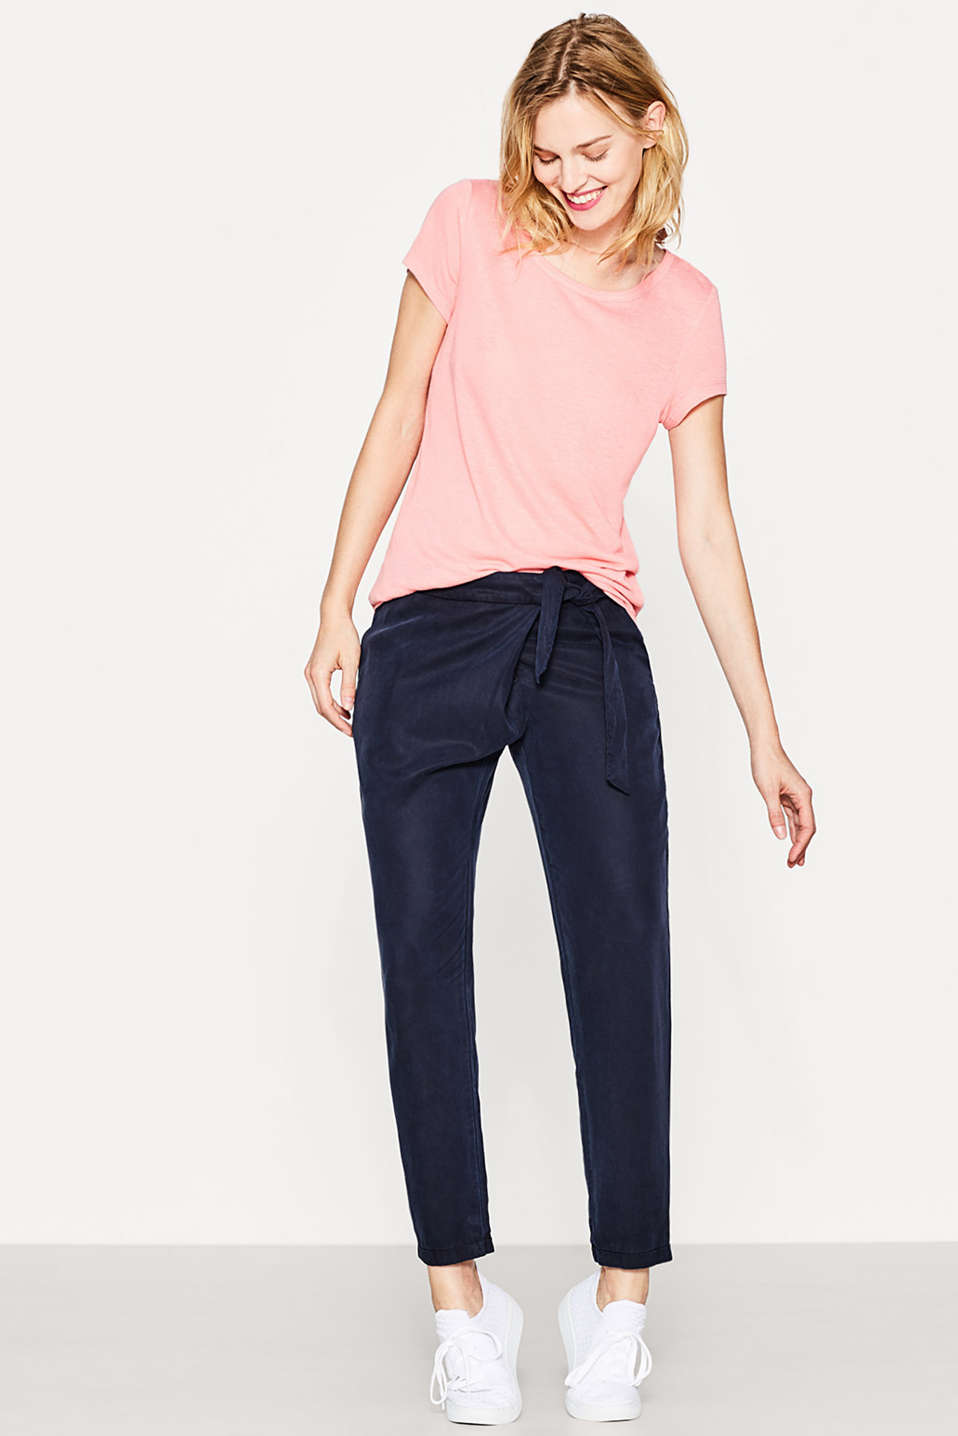 Flowing linen blend top with button placket